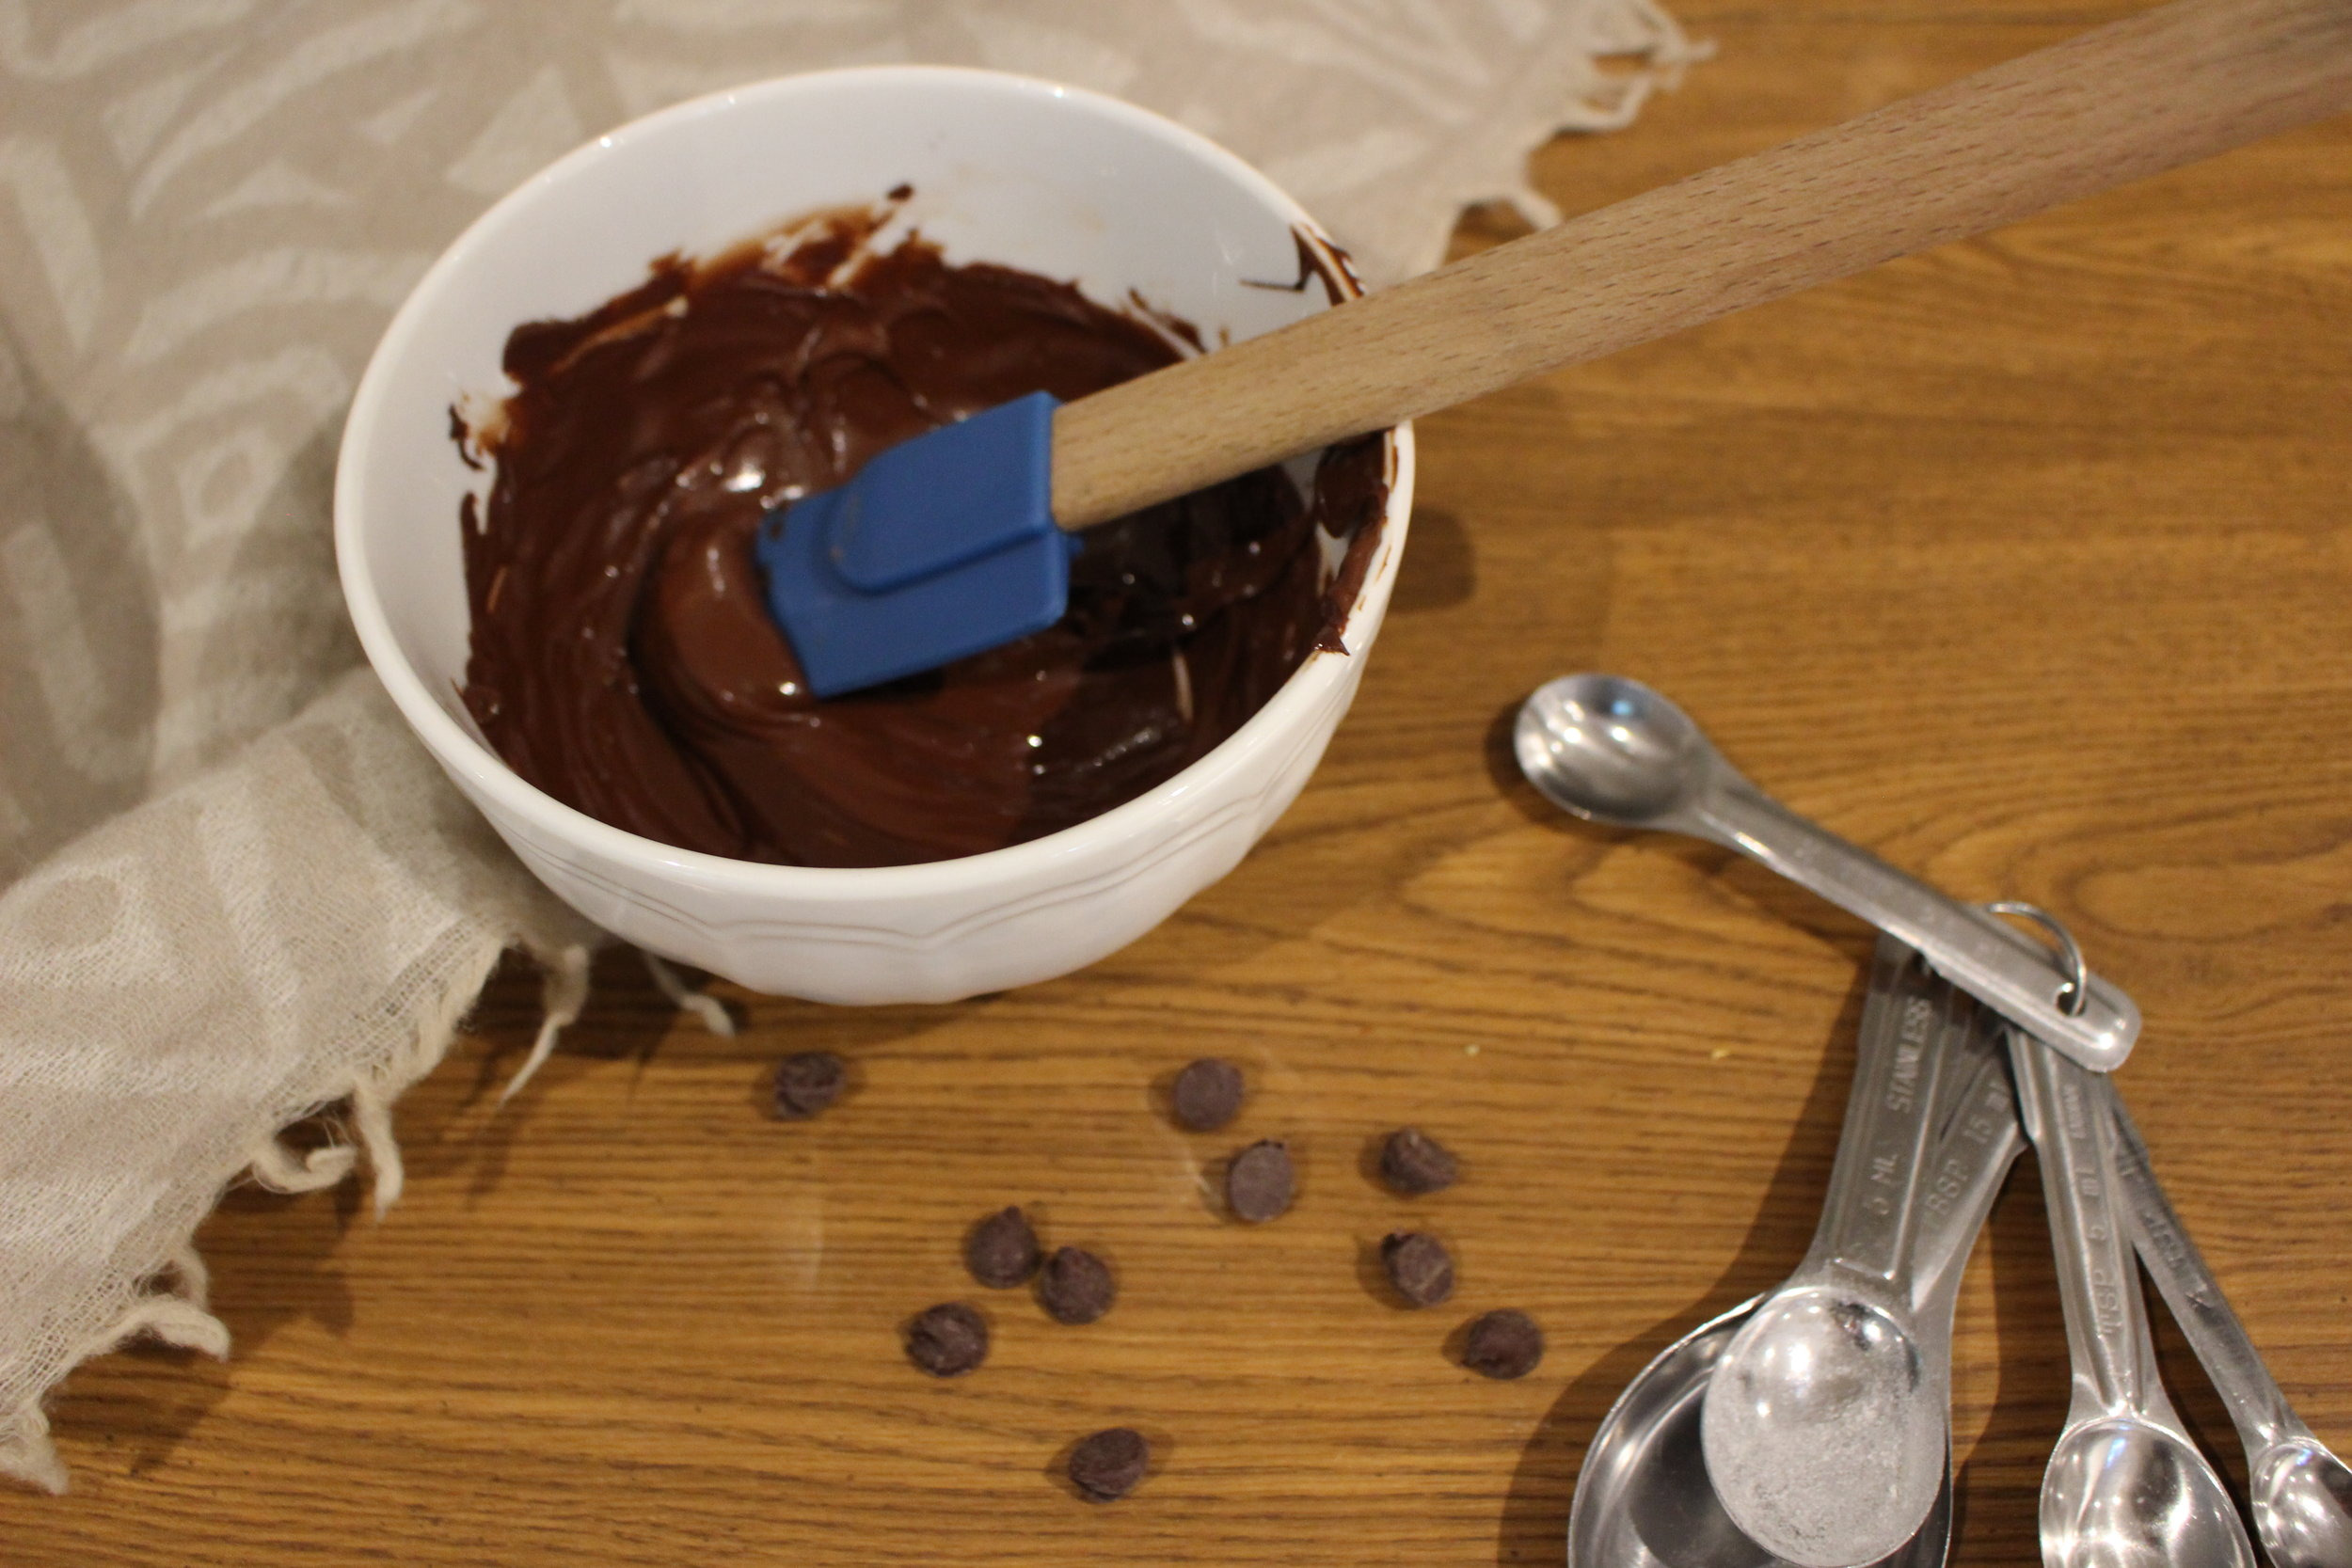 Don't forget the melted chocolate (yum!)